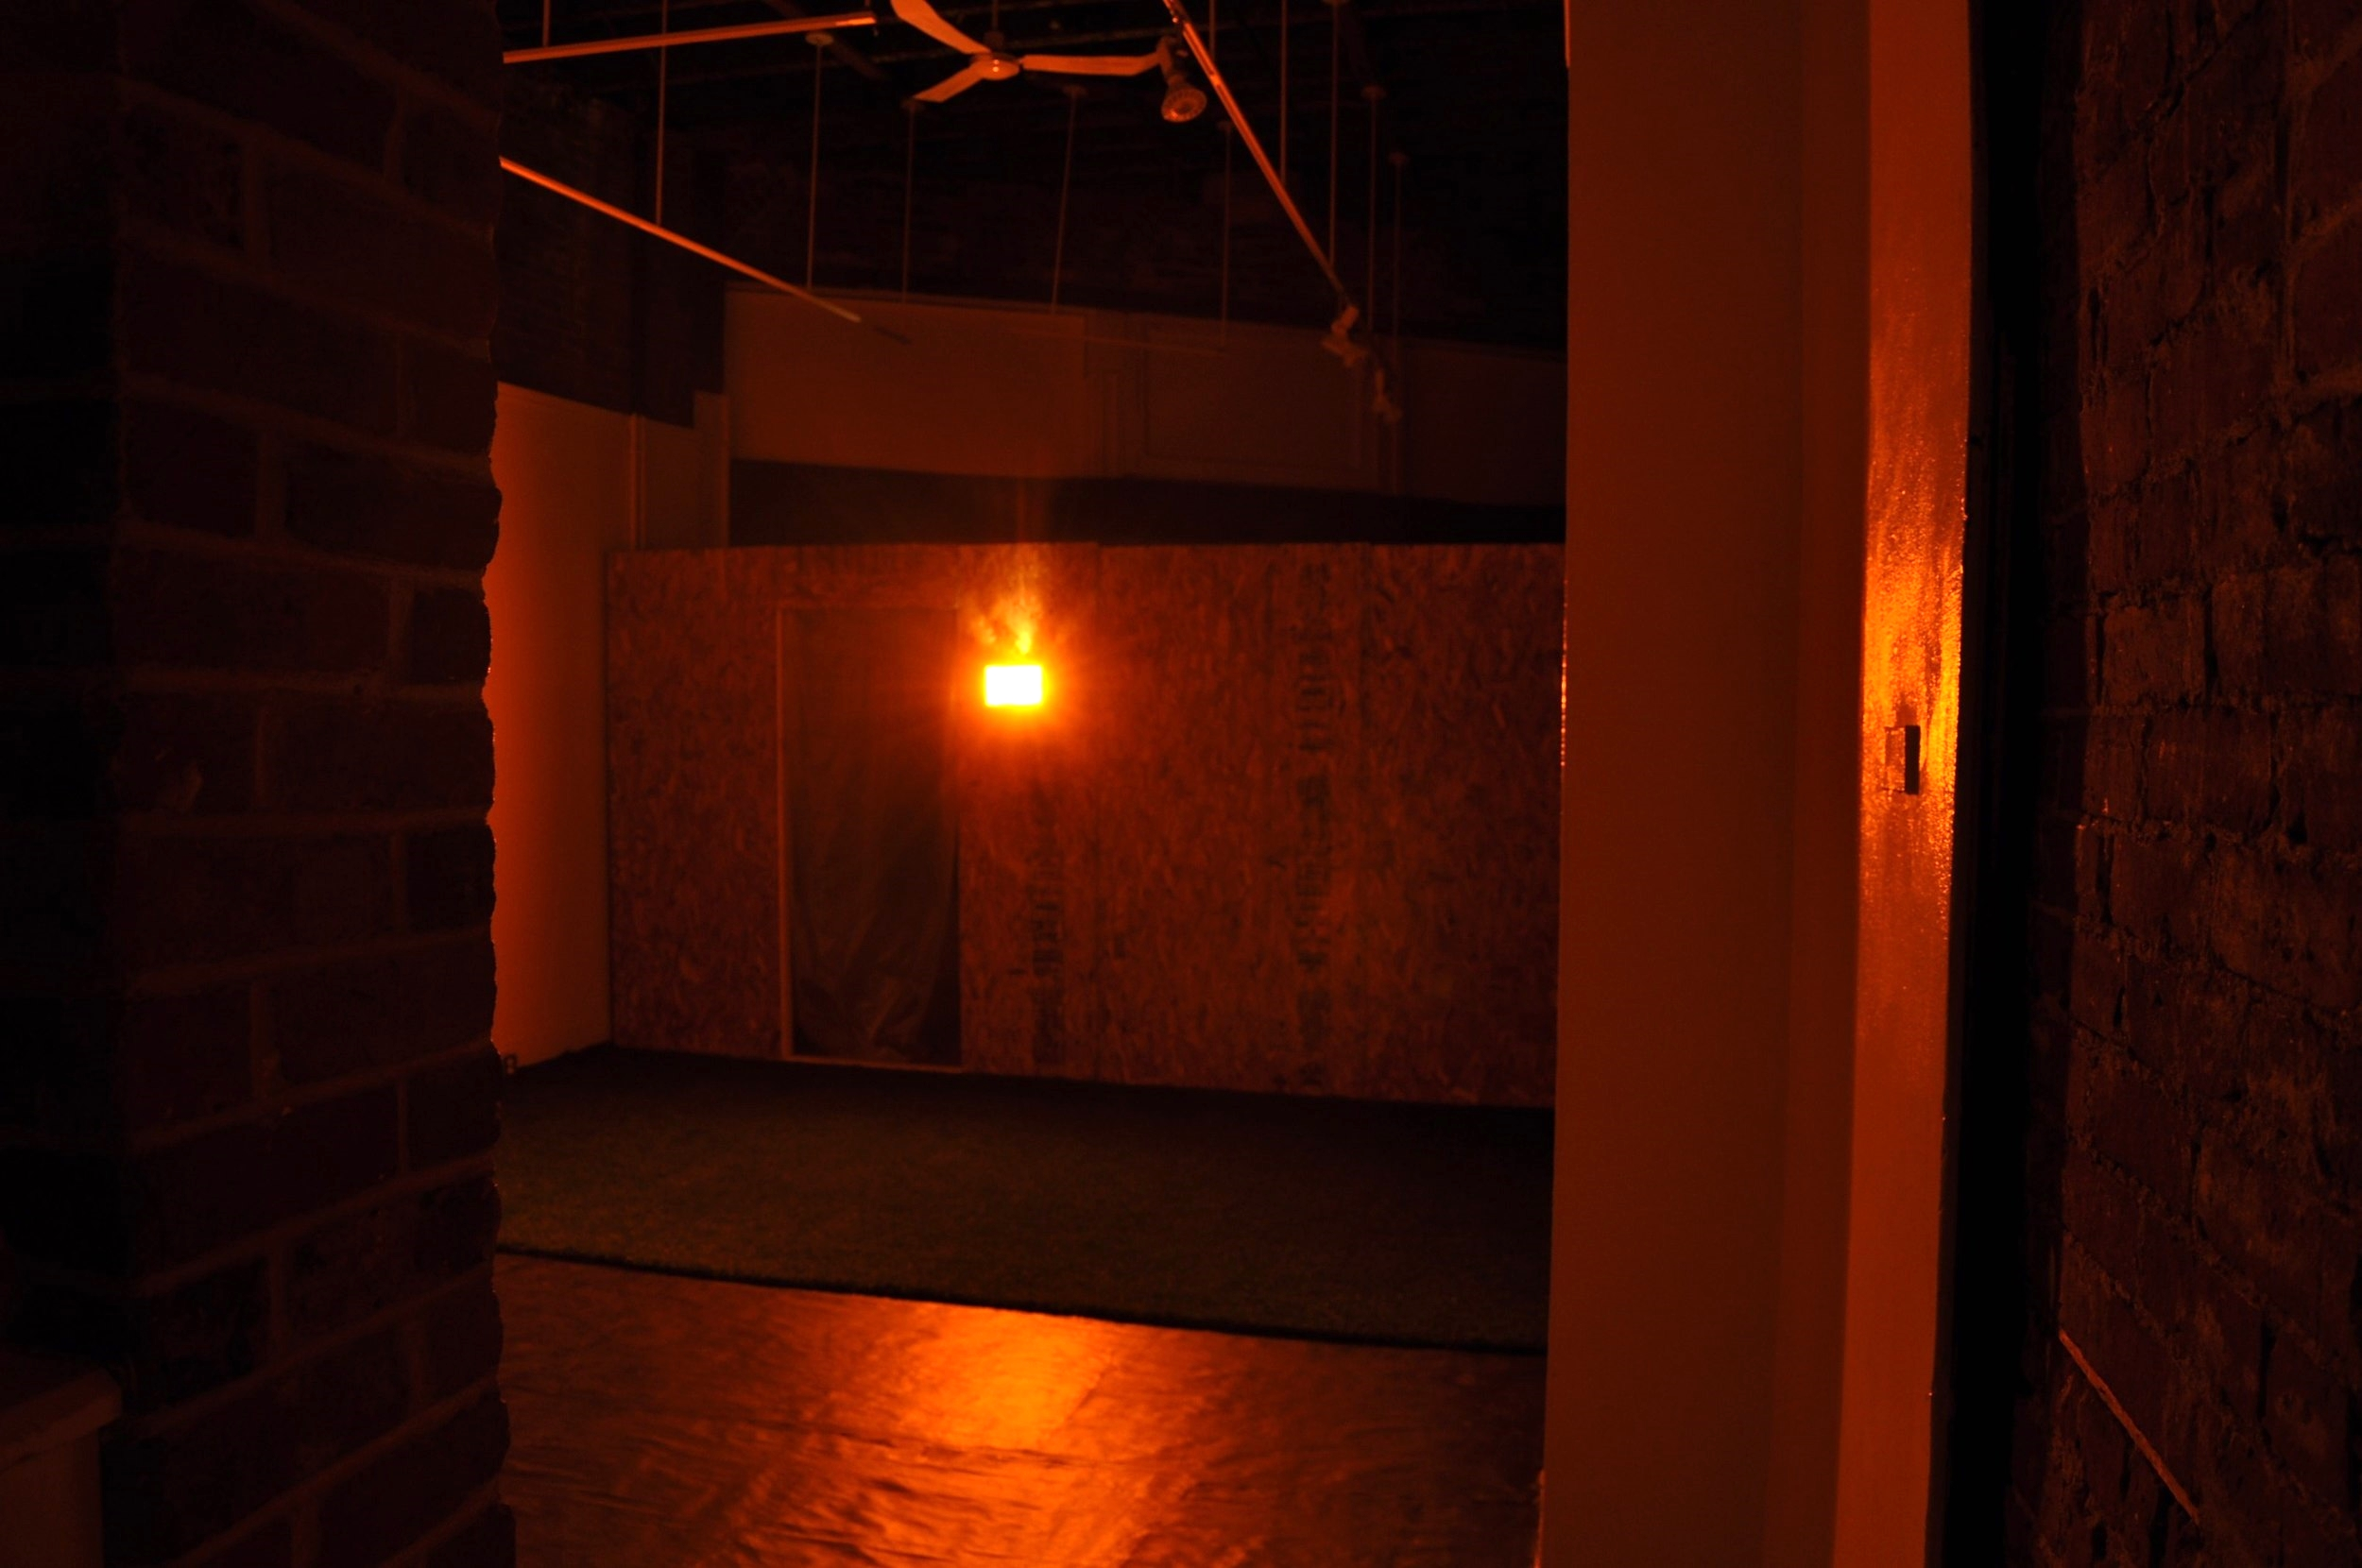 Disorientated Concessions (3 AM) ,2013,Chipboard, wood, tar paper, vapour barrier, fake grass, acrylic, motion detector  Dimensions: 4.9m x 8.2m x 4.8m